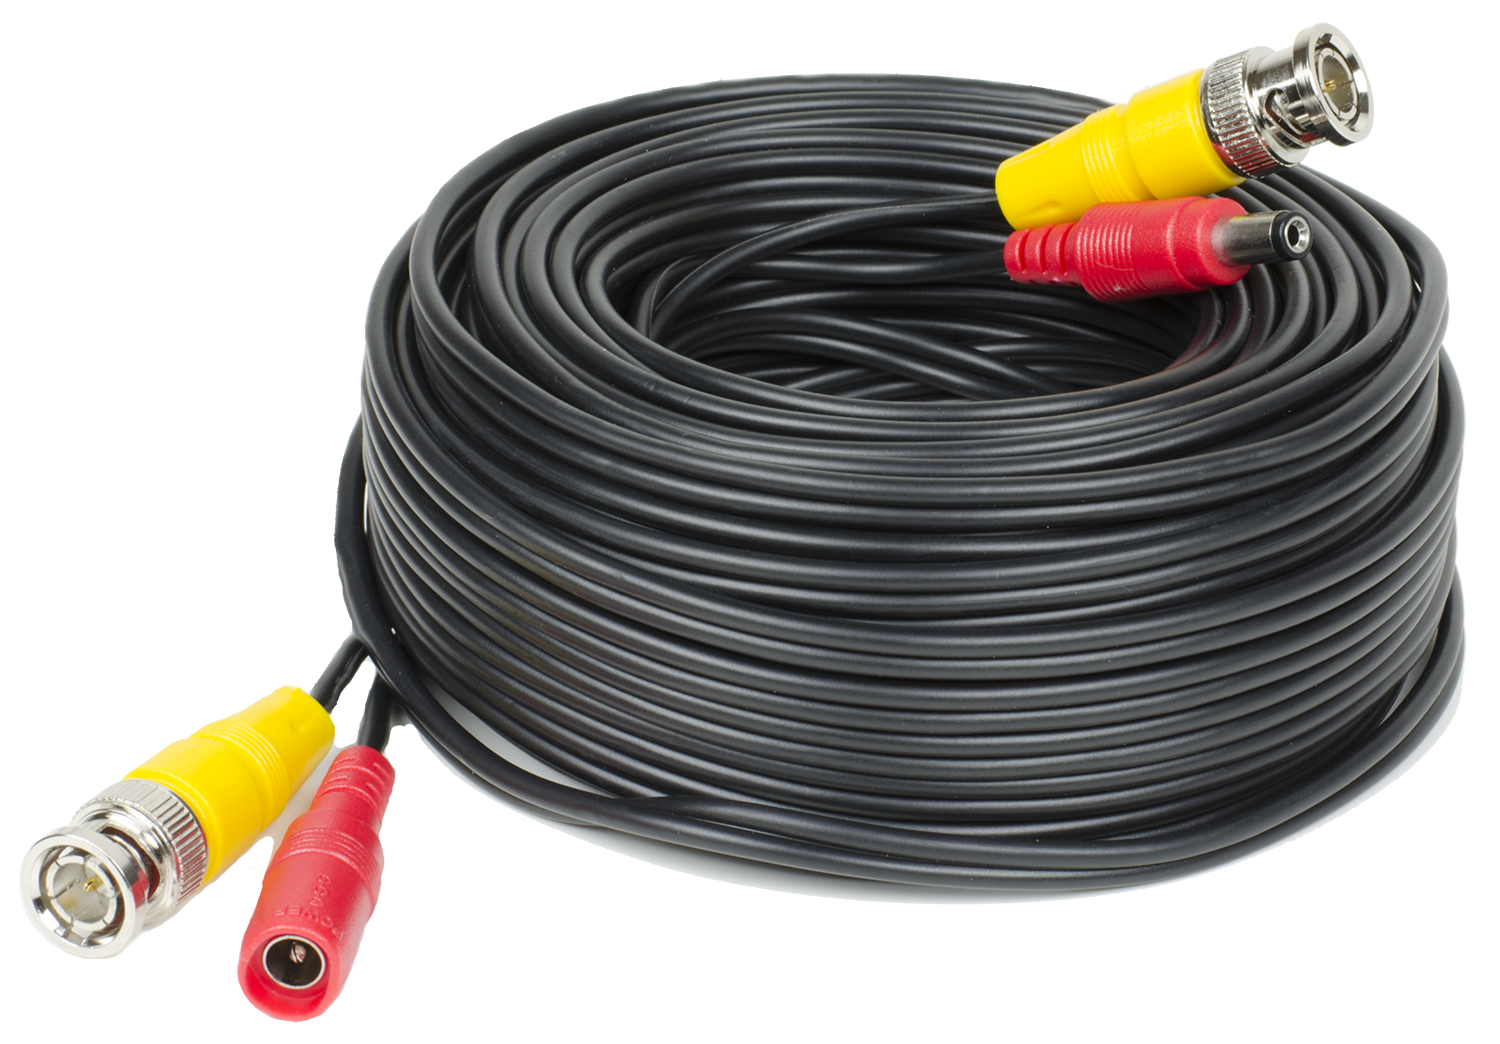 Electrical wire png. Amcrest feet pre made